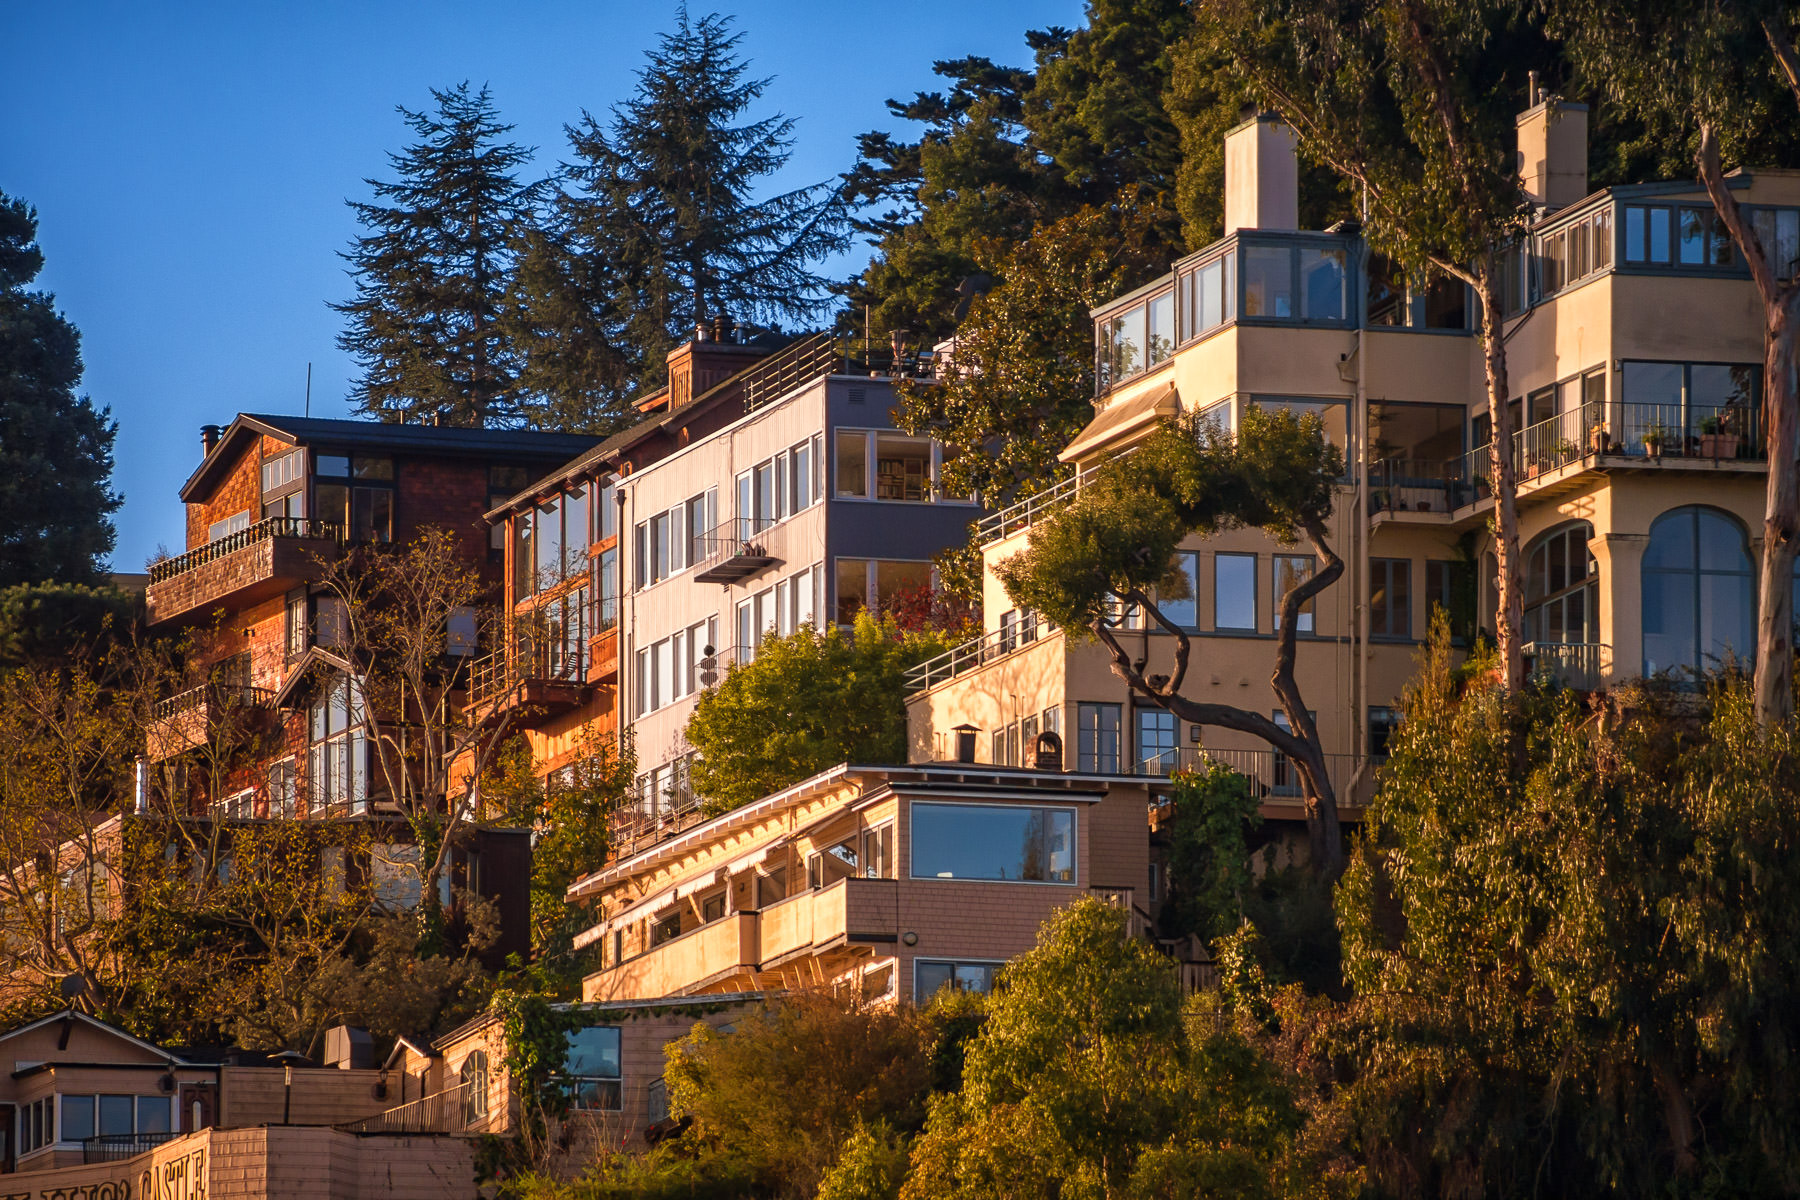 telegraph hill houses